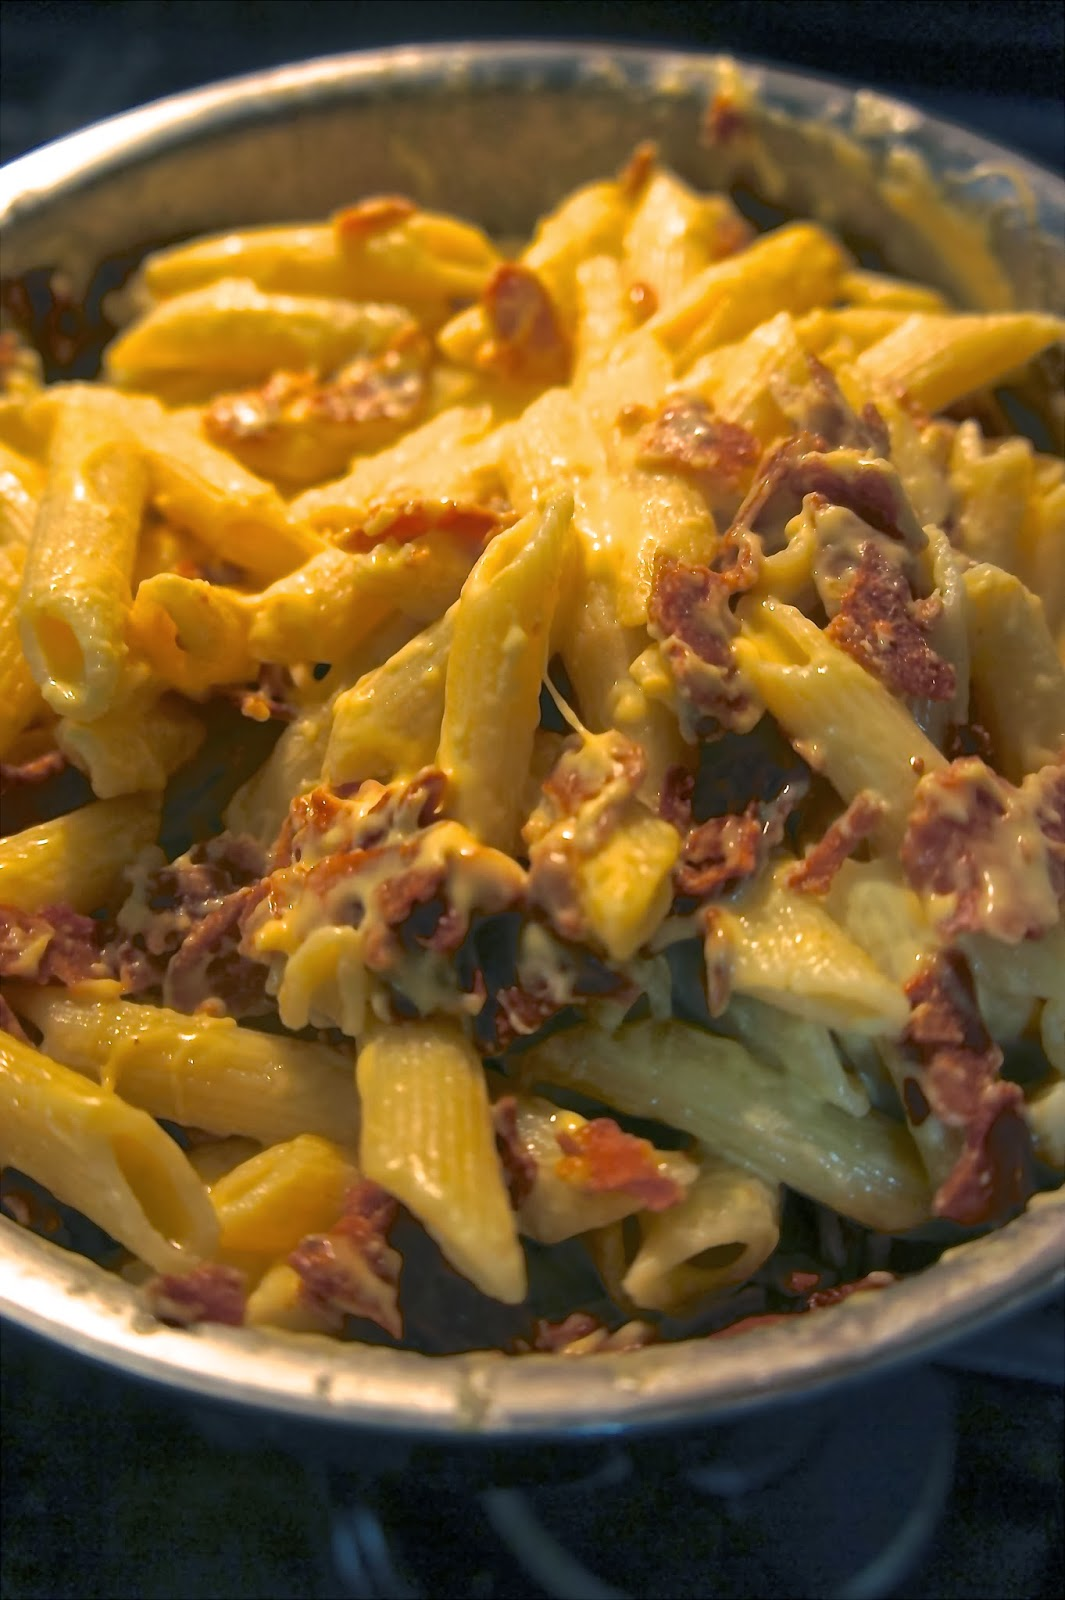 Savory Sweet and Satisfying: Cheese and Bacon Pasta